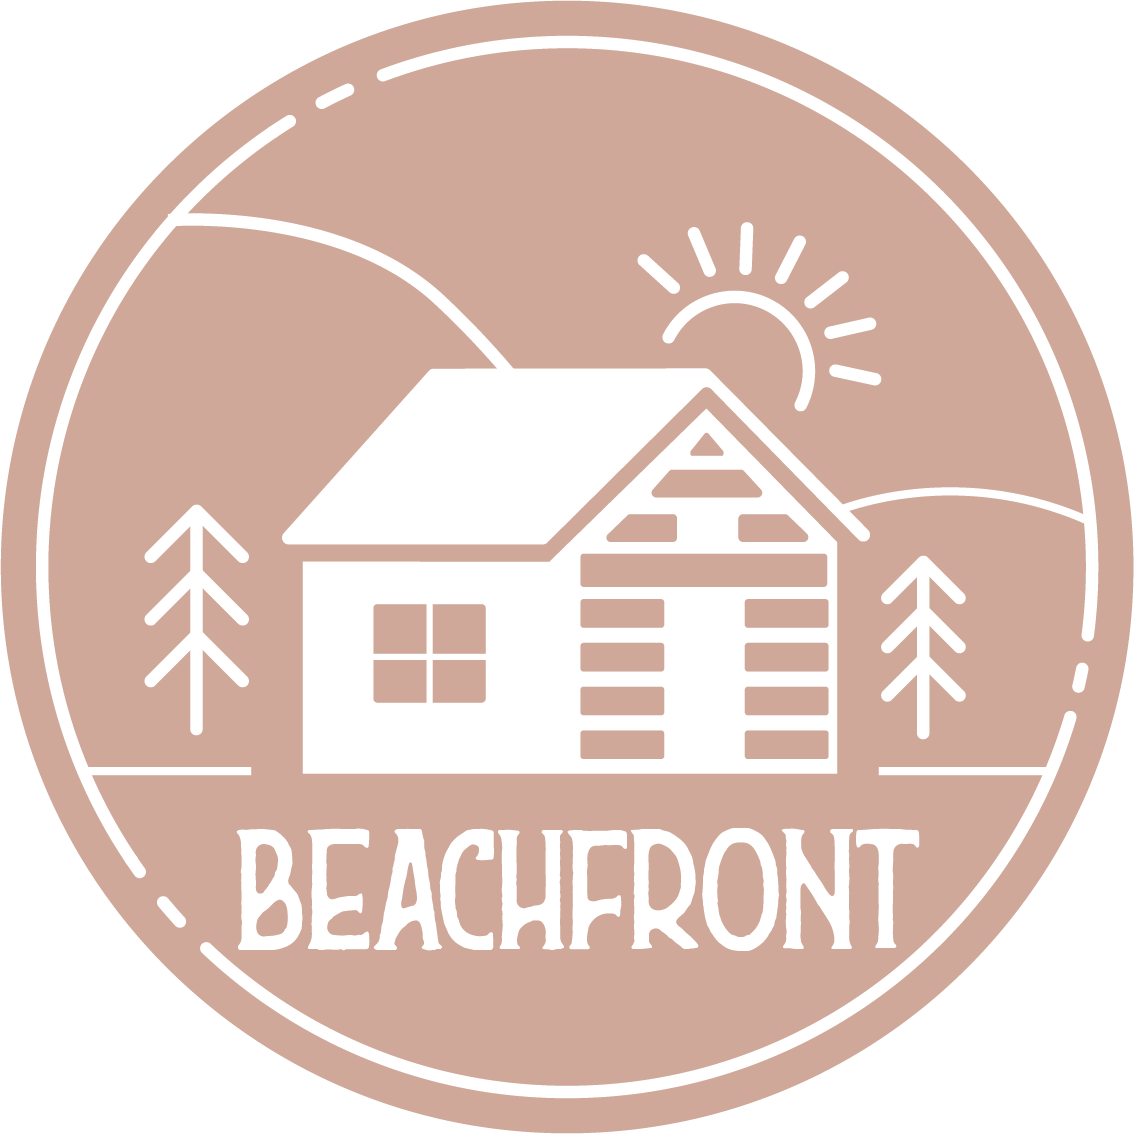 beachfront icon